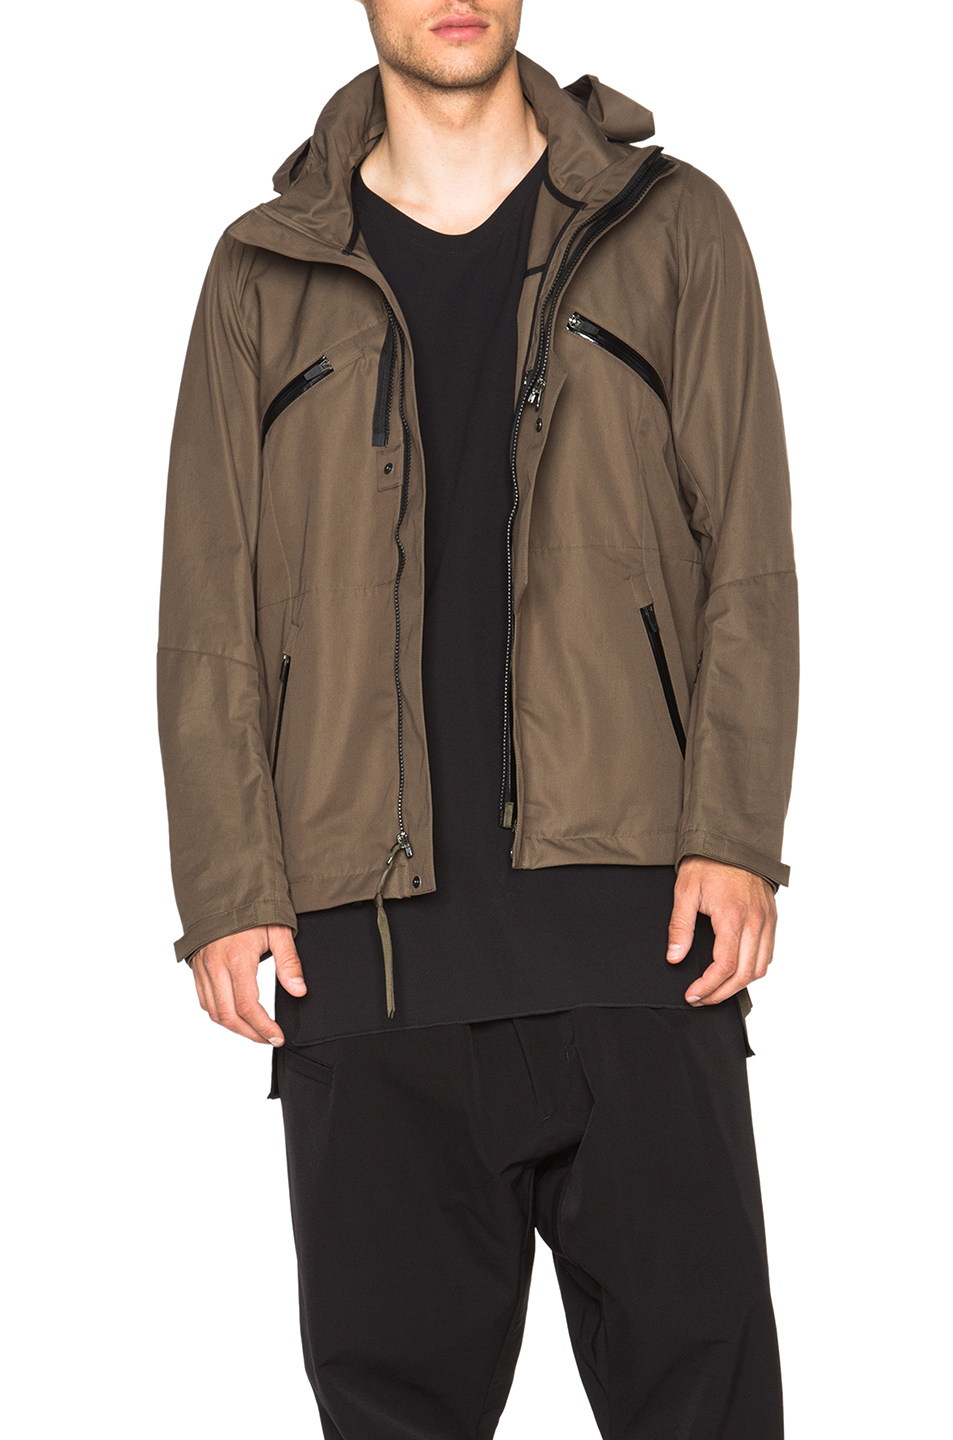 Acronym J1B-S Jacket in Green